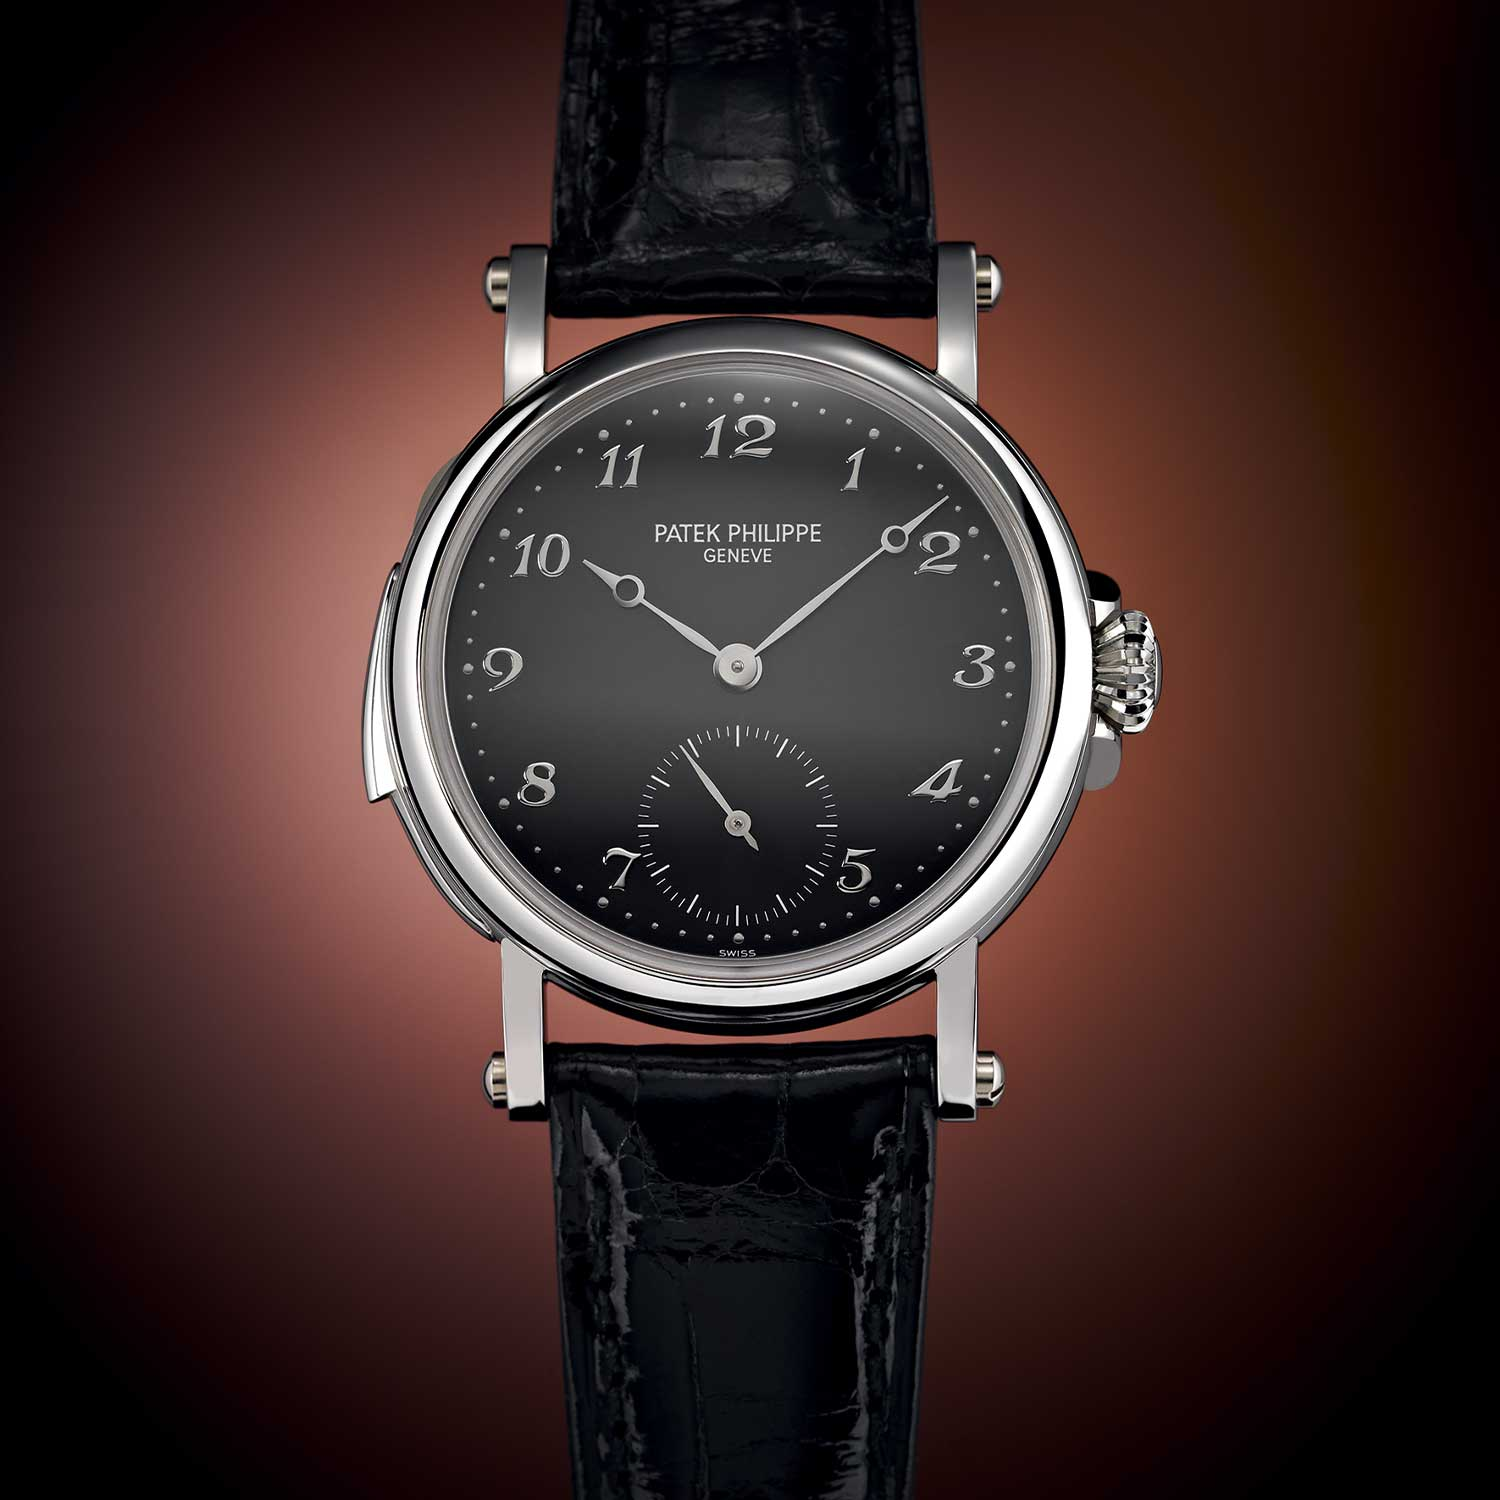 The reference 5029 in platinum, released in celebration of Patek Philippe's 1997 new building at Plan-les-Ouates; 30-piece limited edition - 10 in platinum, 10 in yellow gold, and 10 in rose gold